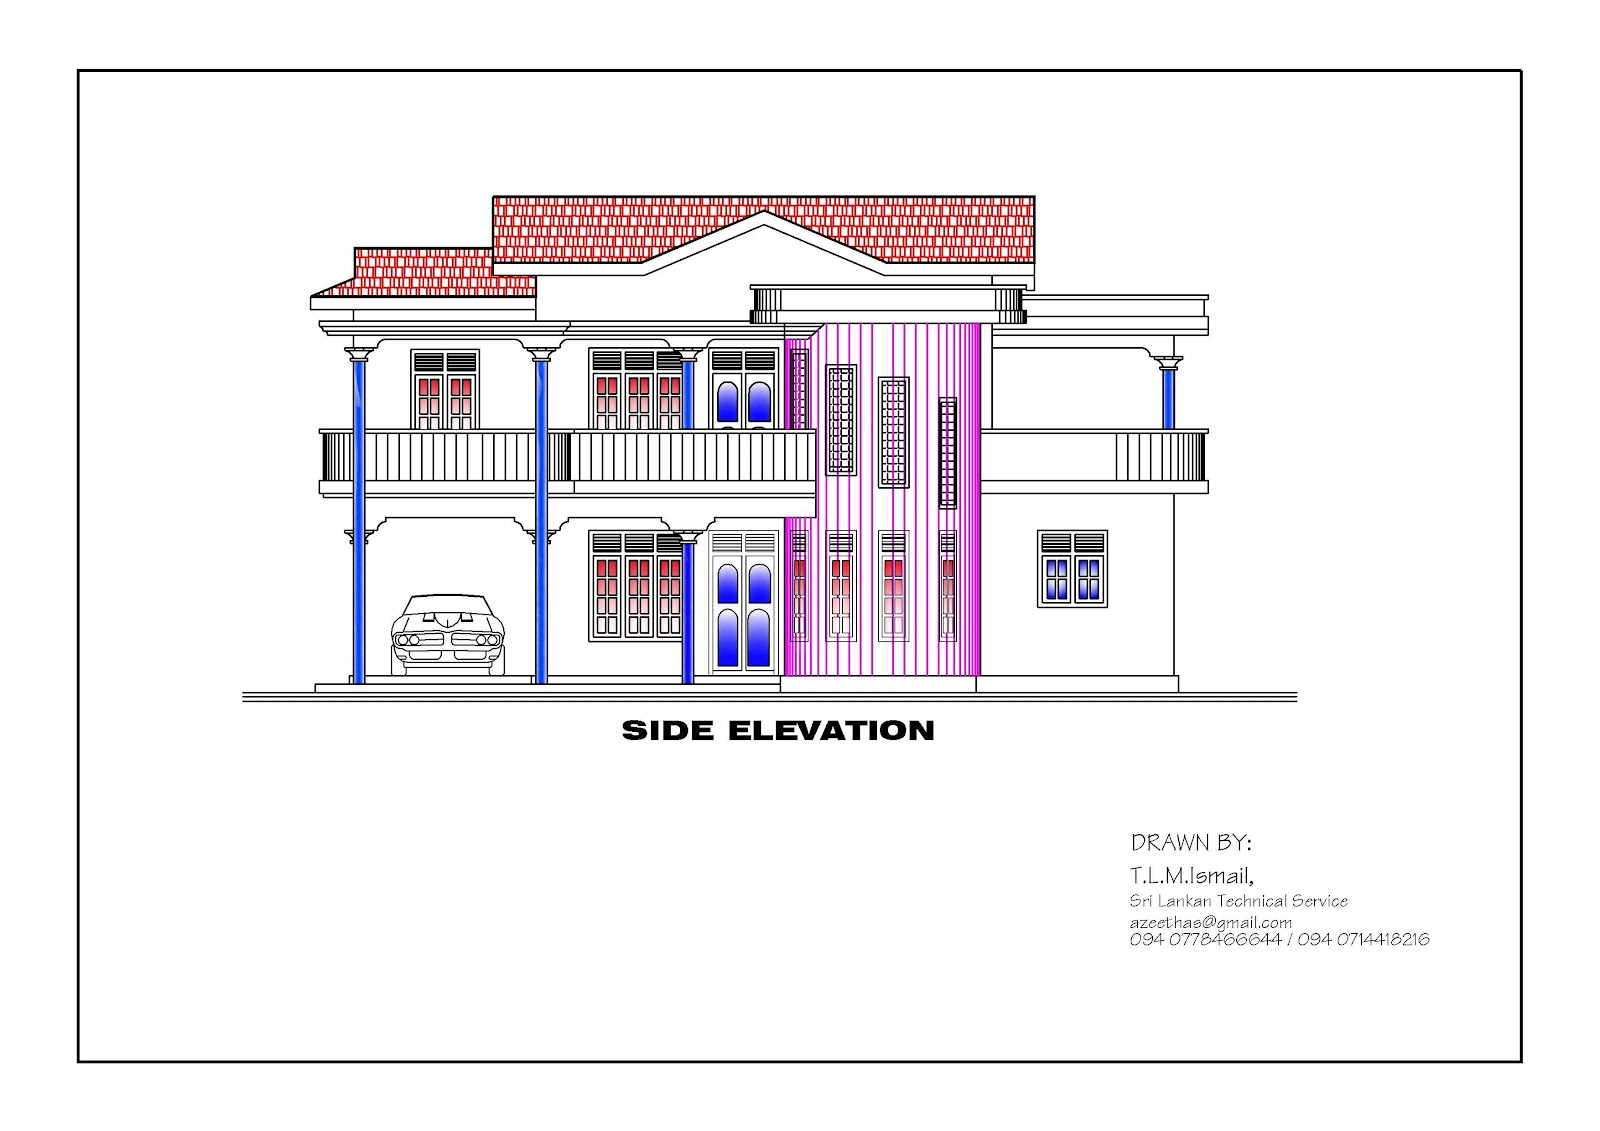 Free Building Drawing at GetDrawings – Site Plan Software Free Download